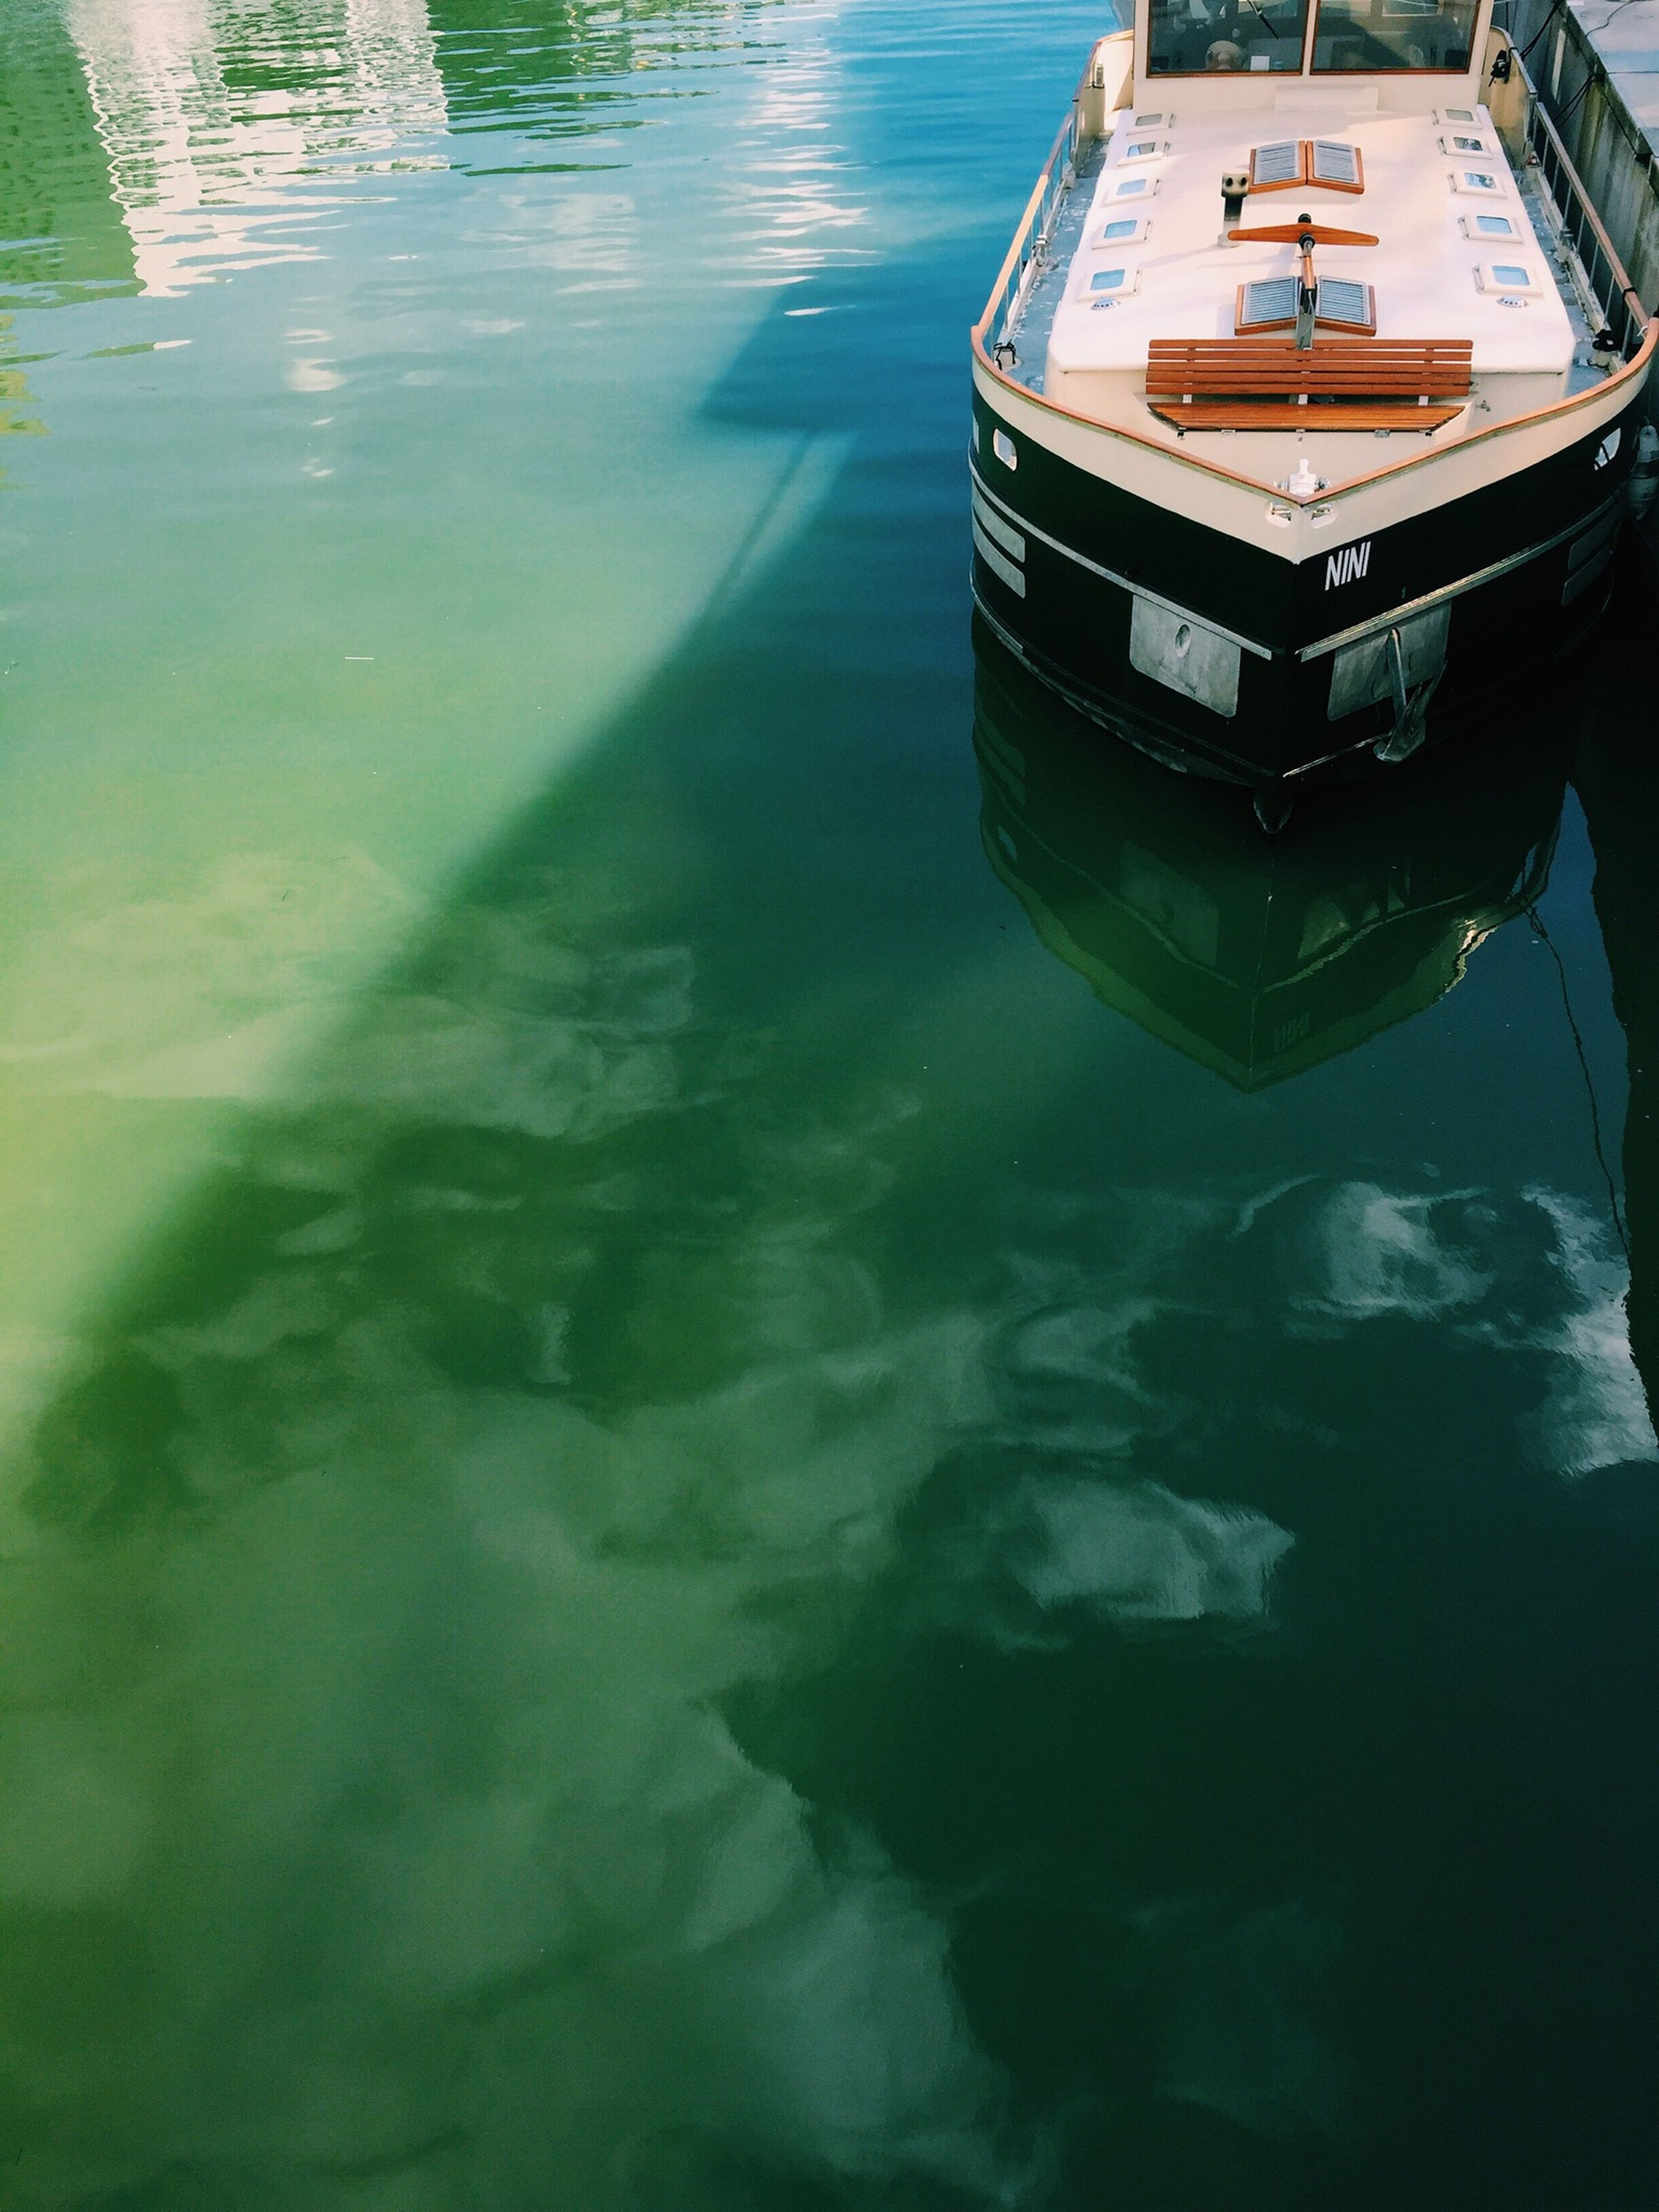 water, transportation, mode of transport, nautical vessel, boat, high angle view, waterfront, moored, reflection, sea, travel, river, outdoors, day, nature, rippled, sunlight, no people, on the move, lake